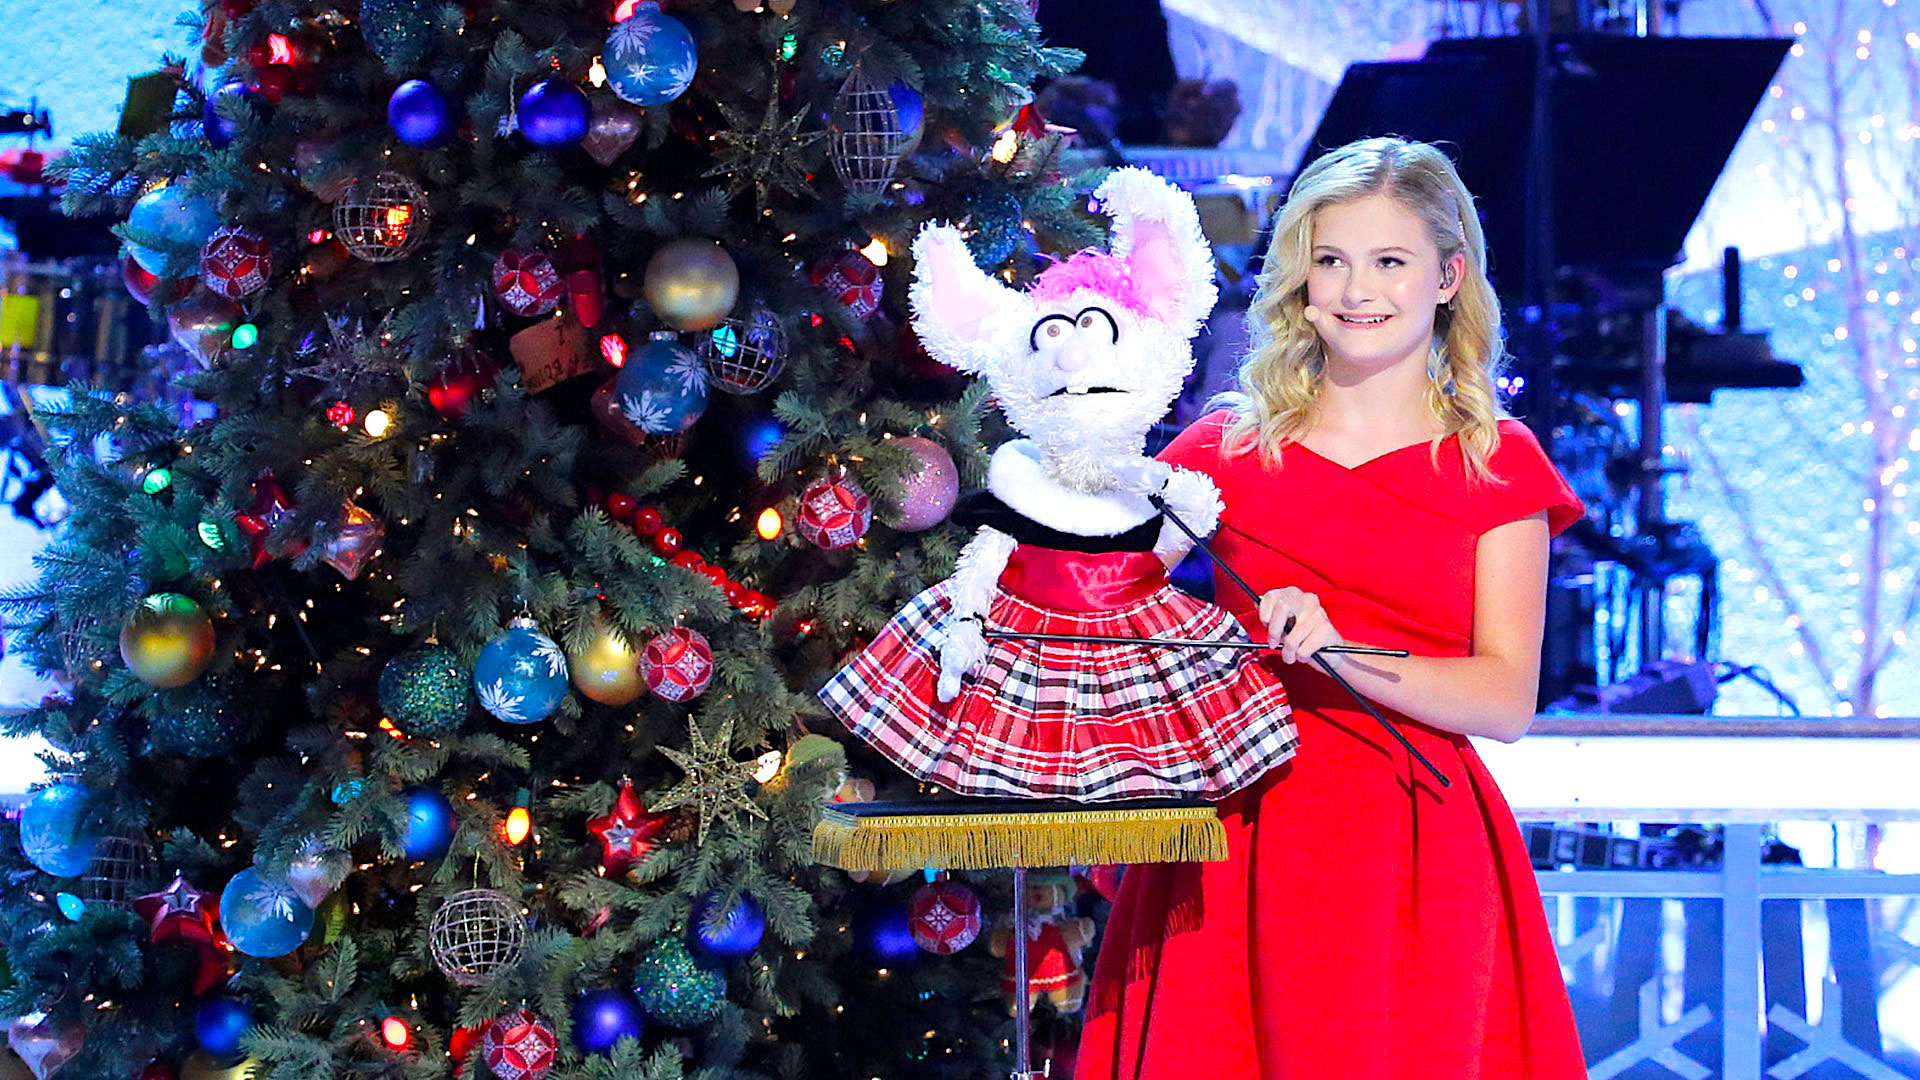 Darci Lynne: My Hometown Christmas - NBC1 hr special with Darci Lynne Farmer, Kristen Chenoweth, Pentatonix and Toby Keith